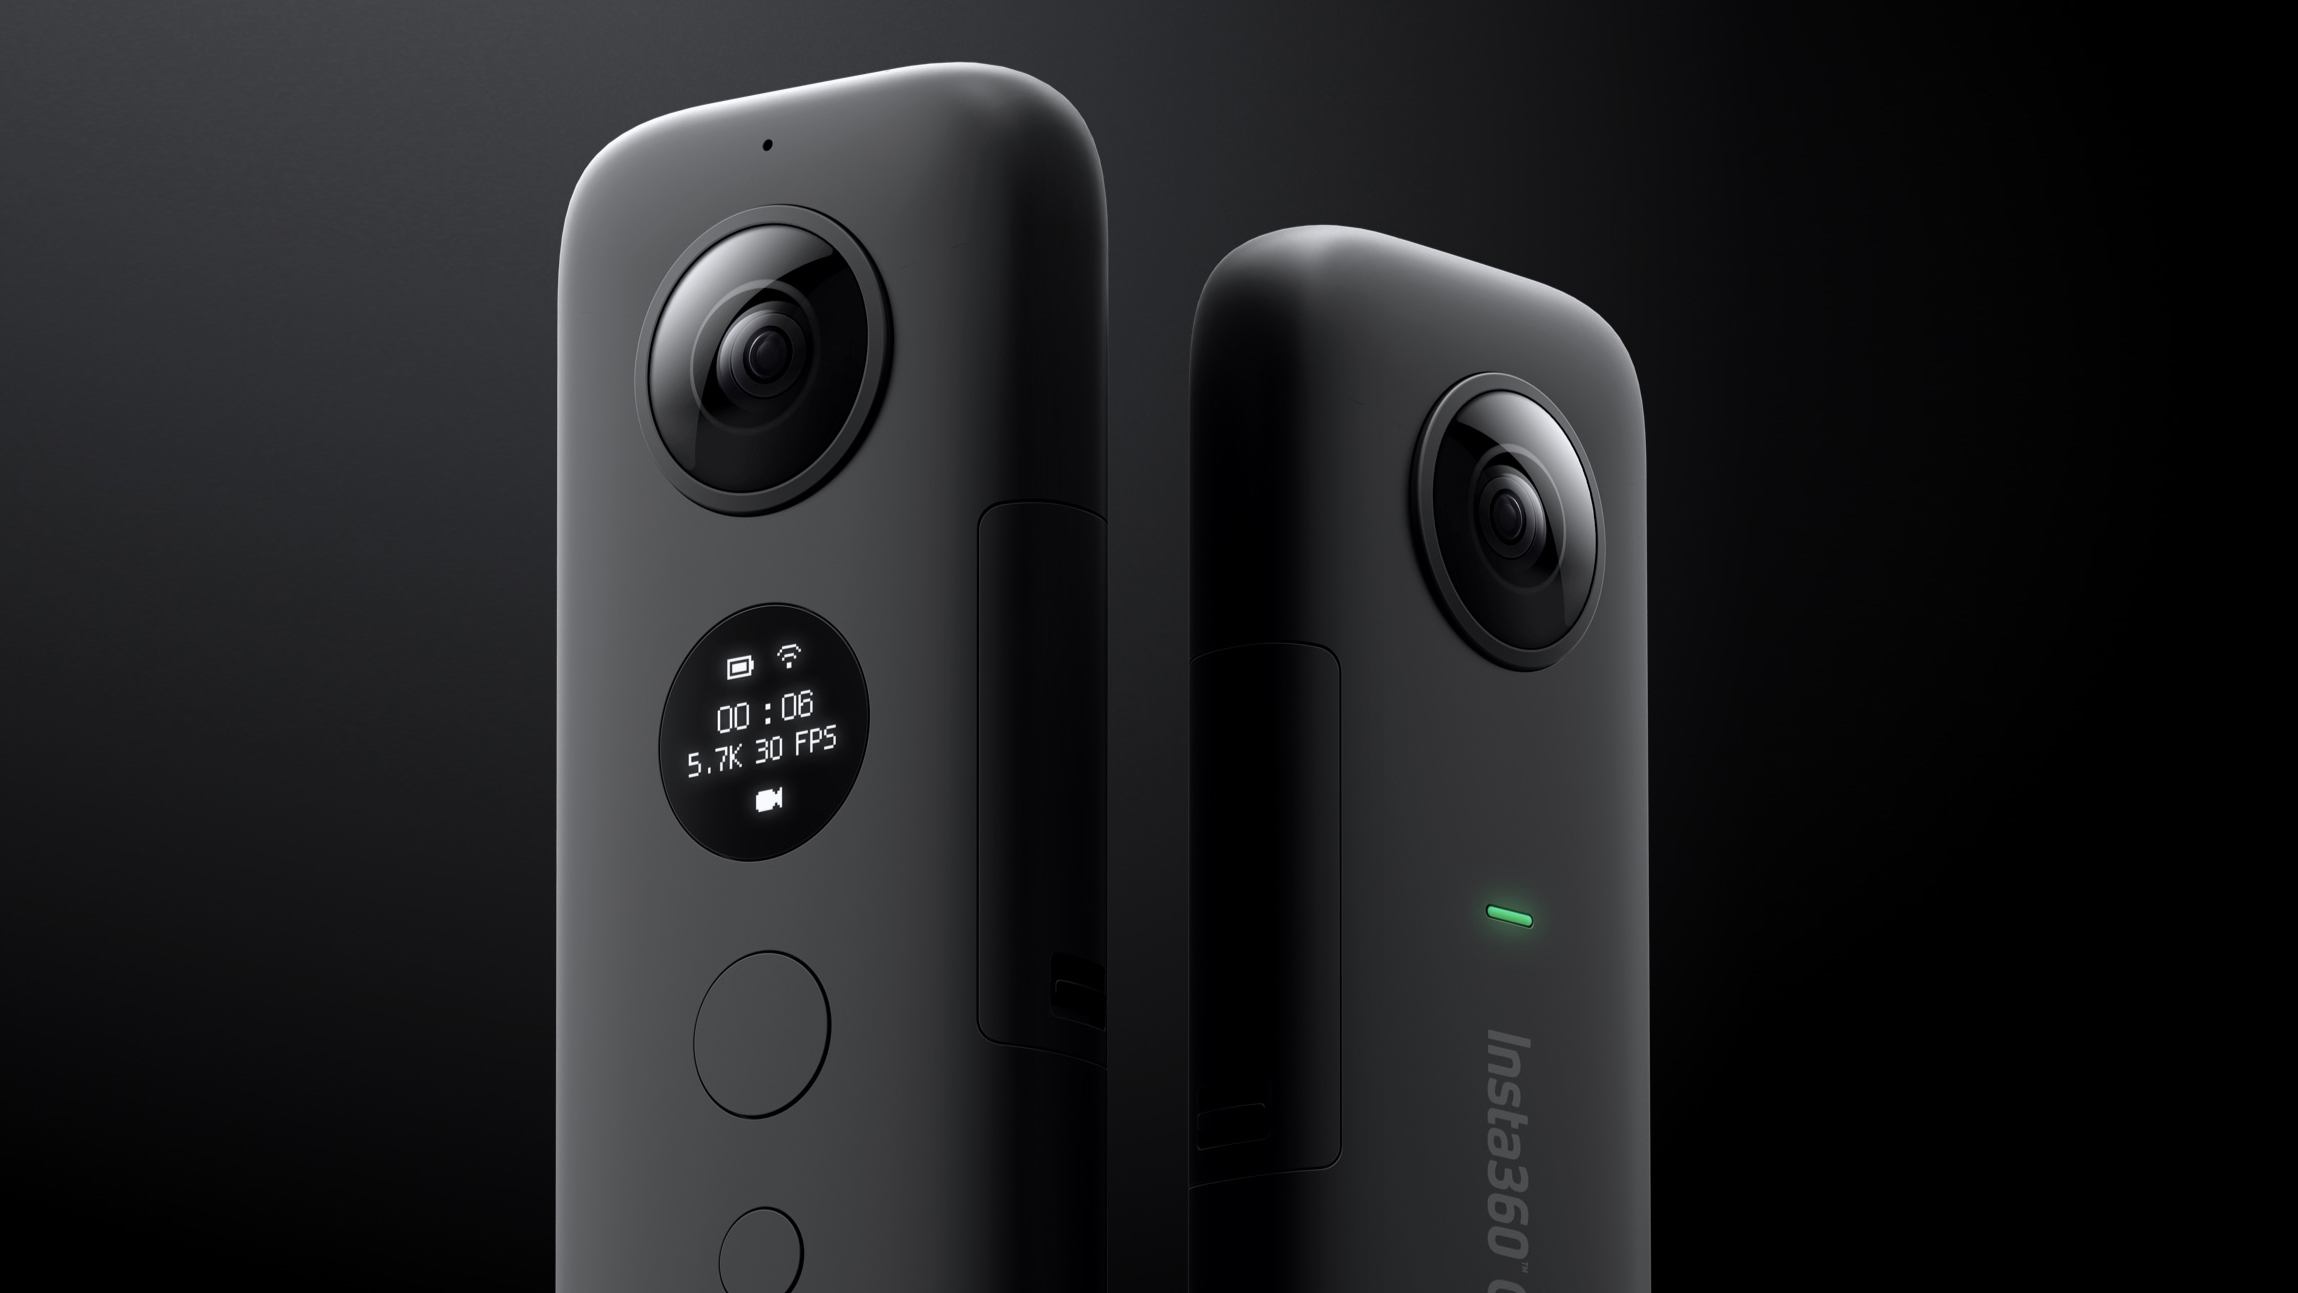 Insta360 launches 5.7K 360 action camera